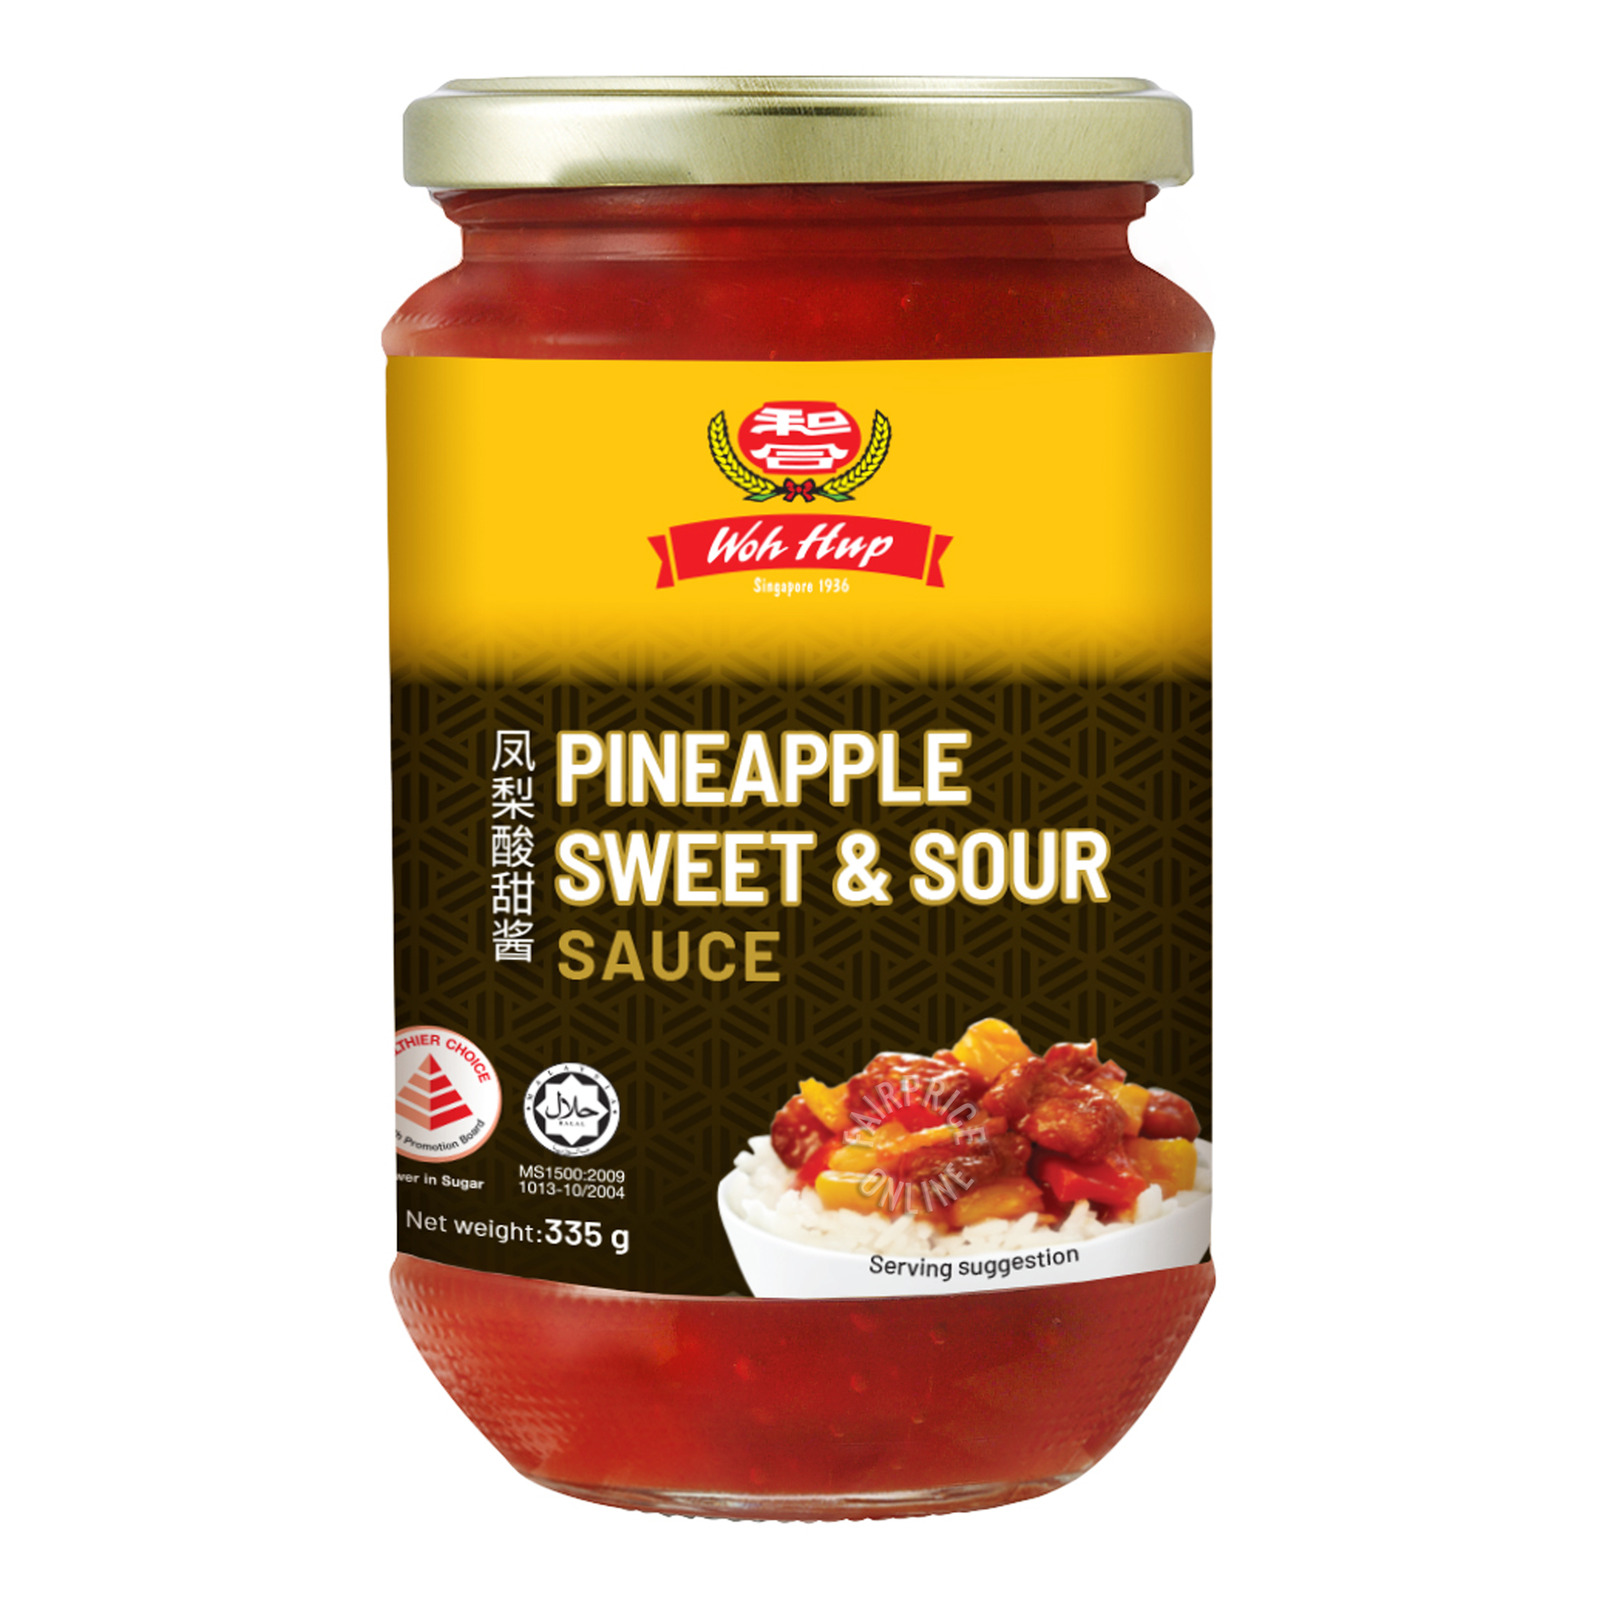 Woh Hup Sauce - Pineapple Sweet and Sour